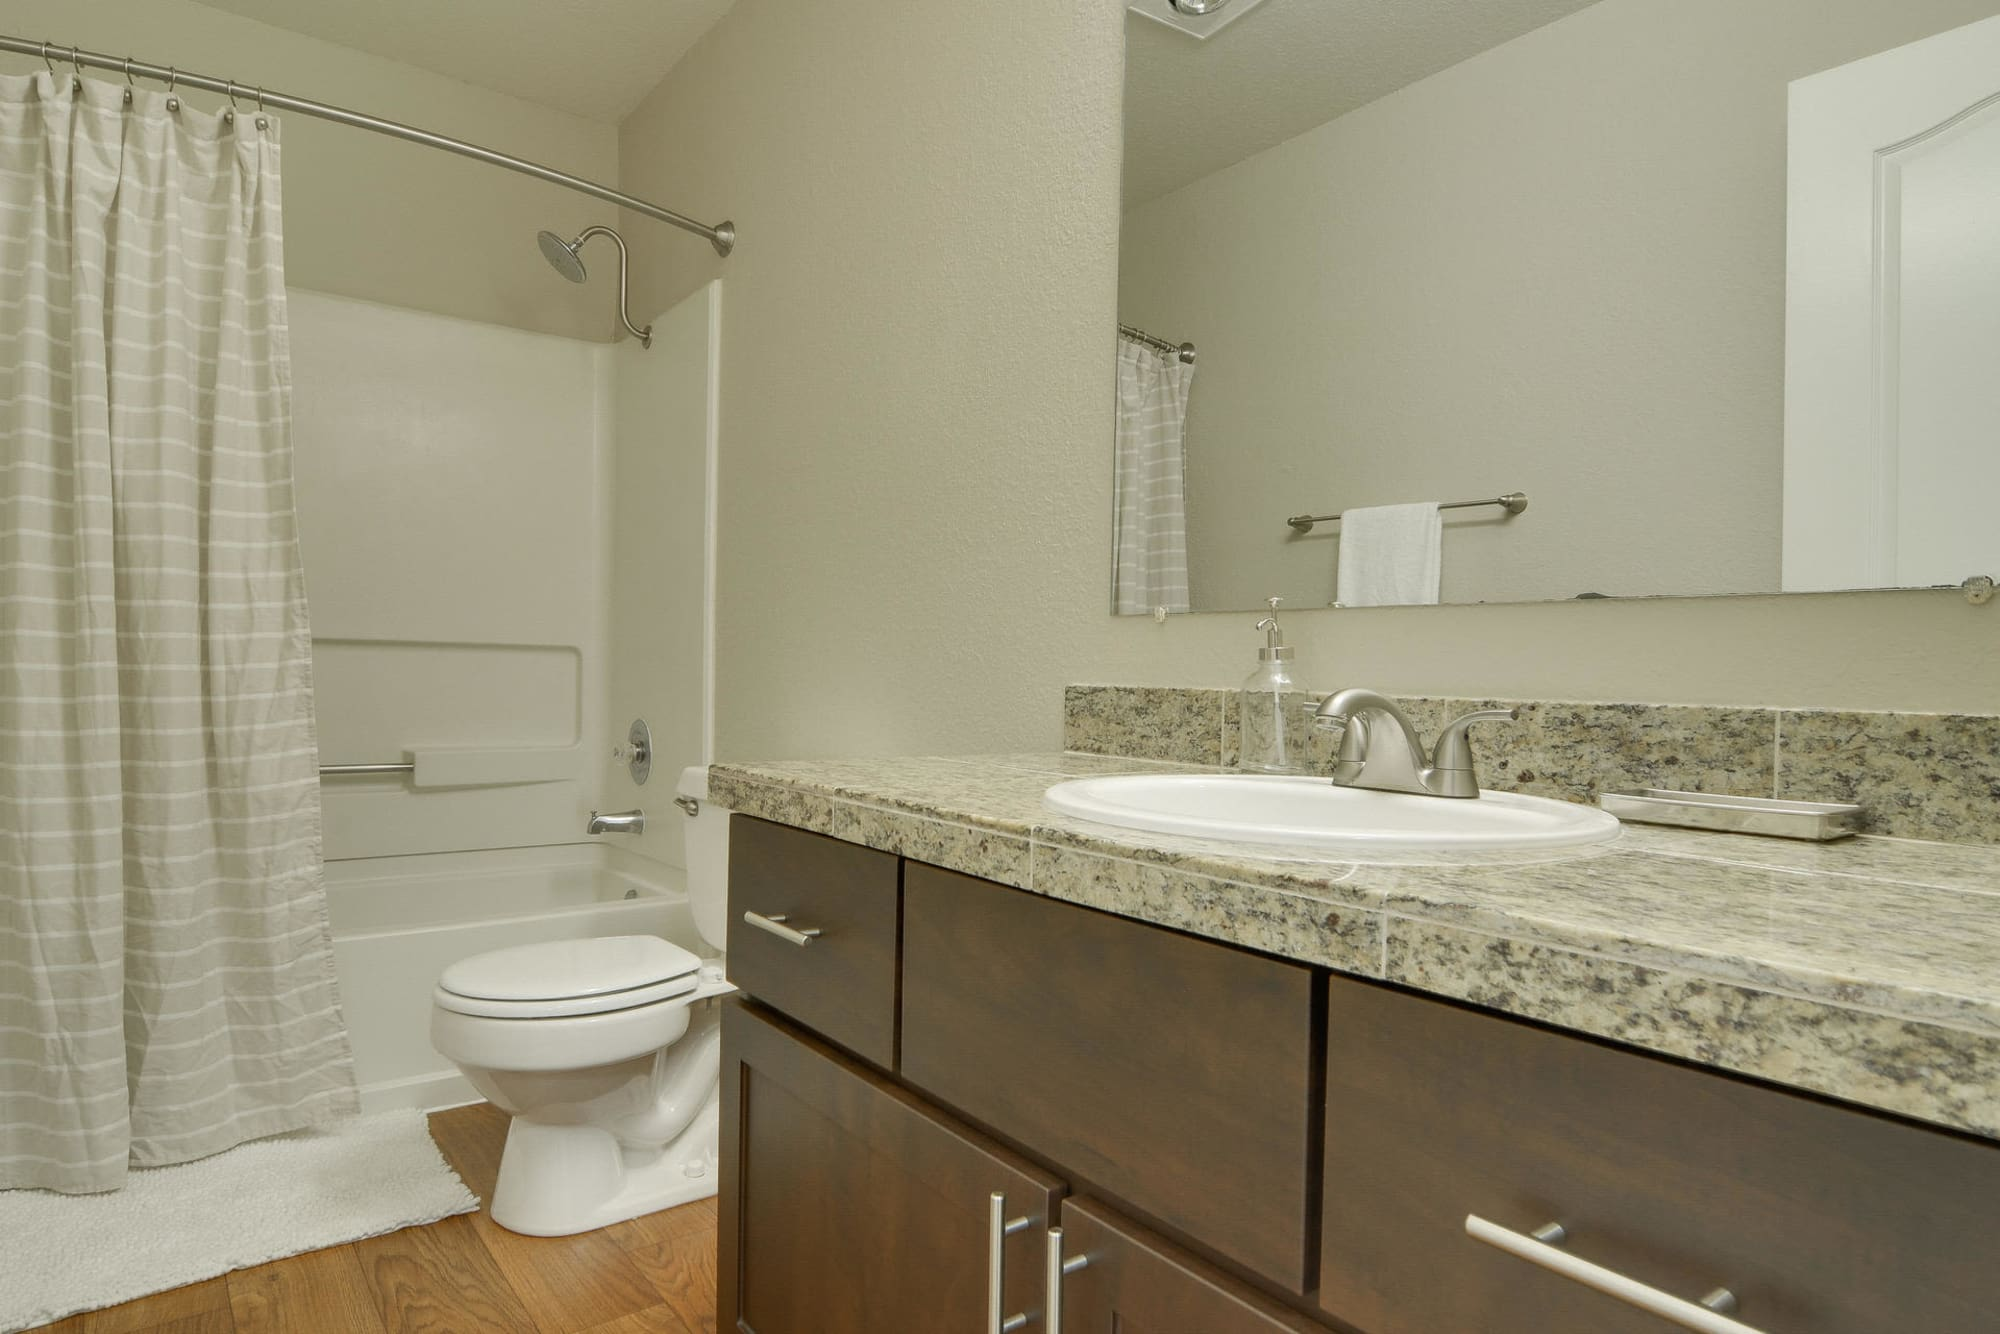 luxury apartment bathroom with tub at Carriage House Apartments in Vancouver, WA